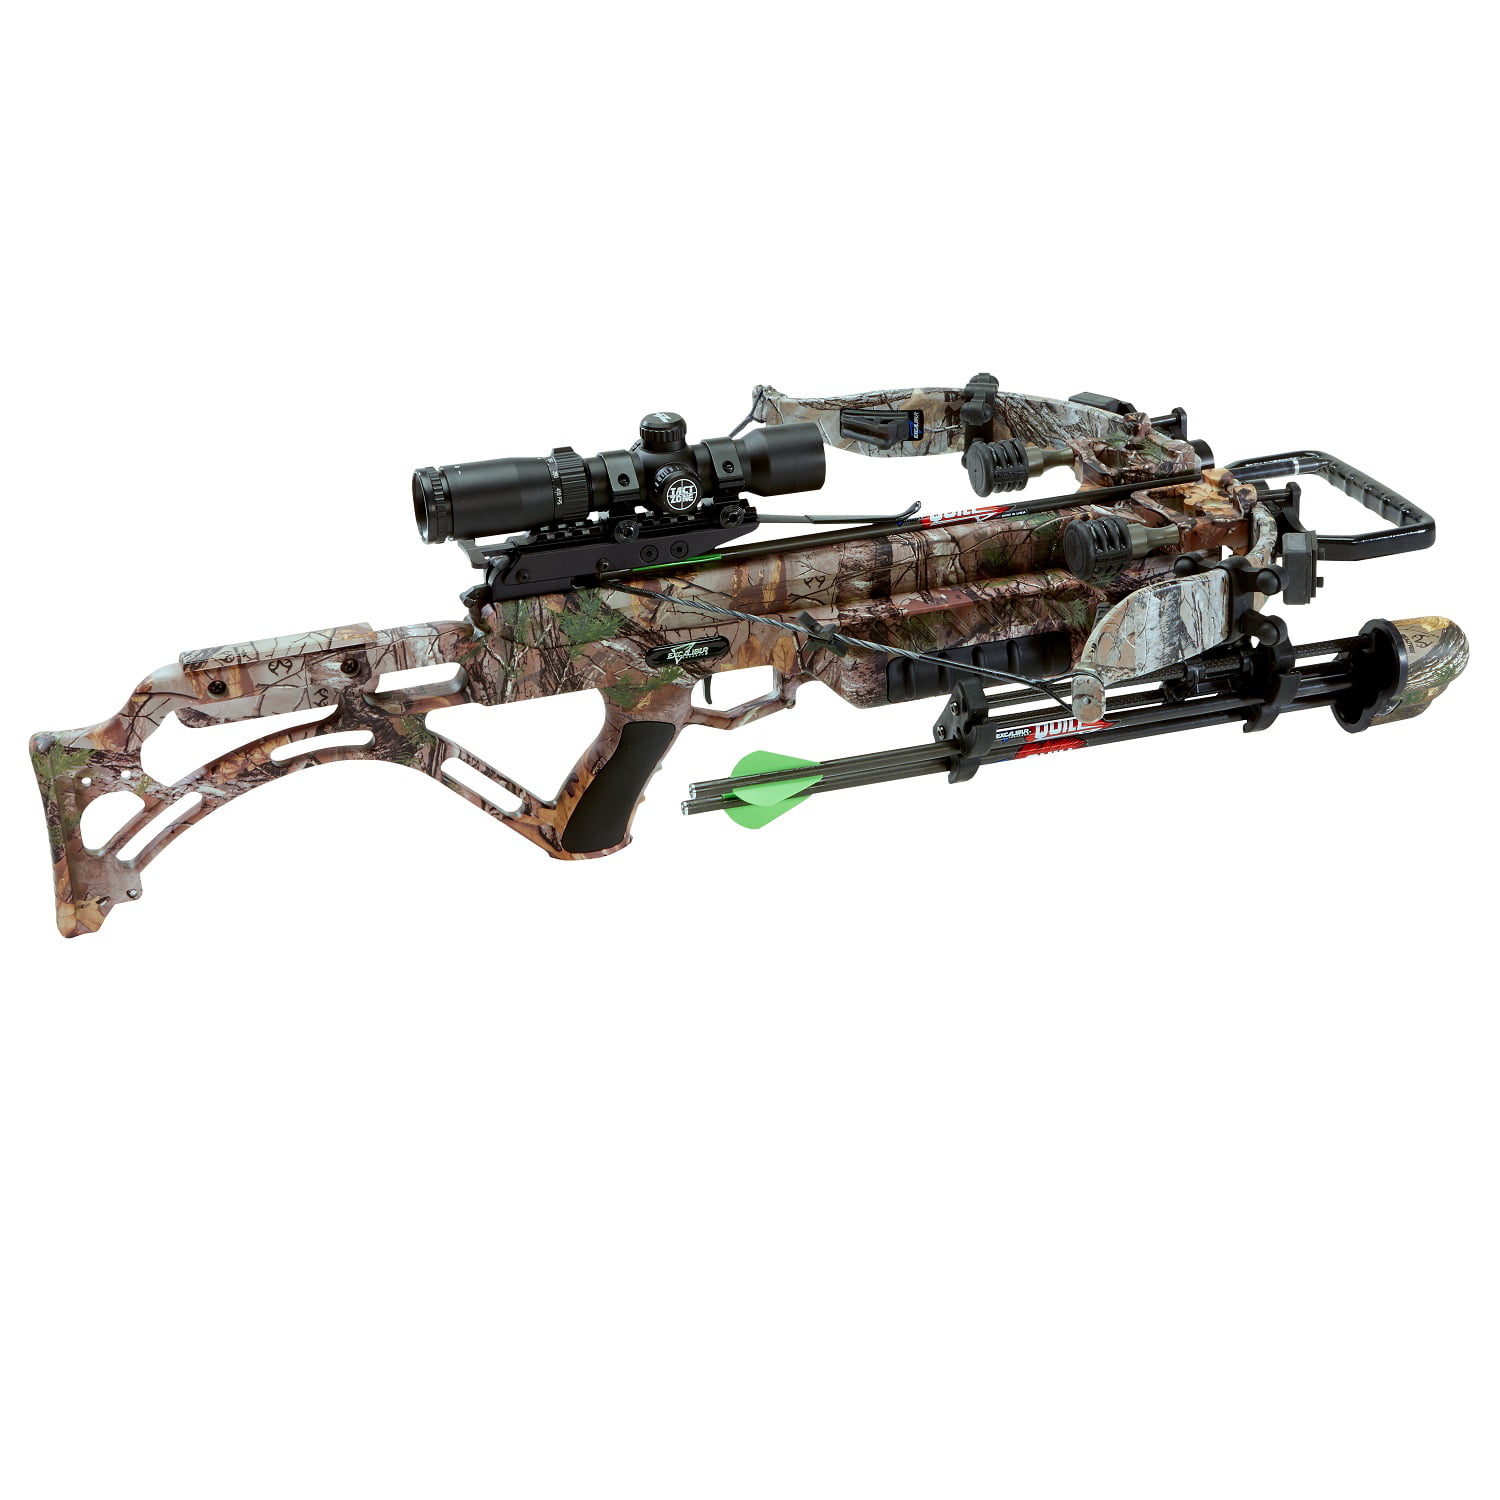 Click here to buy Excalibur Crossbow E95857 Micro Suppresso by Excalibur Crossbow.